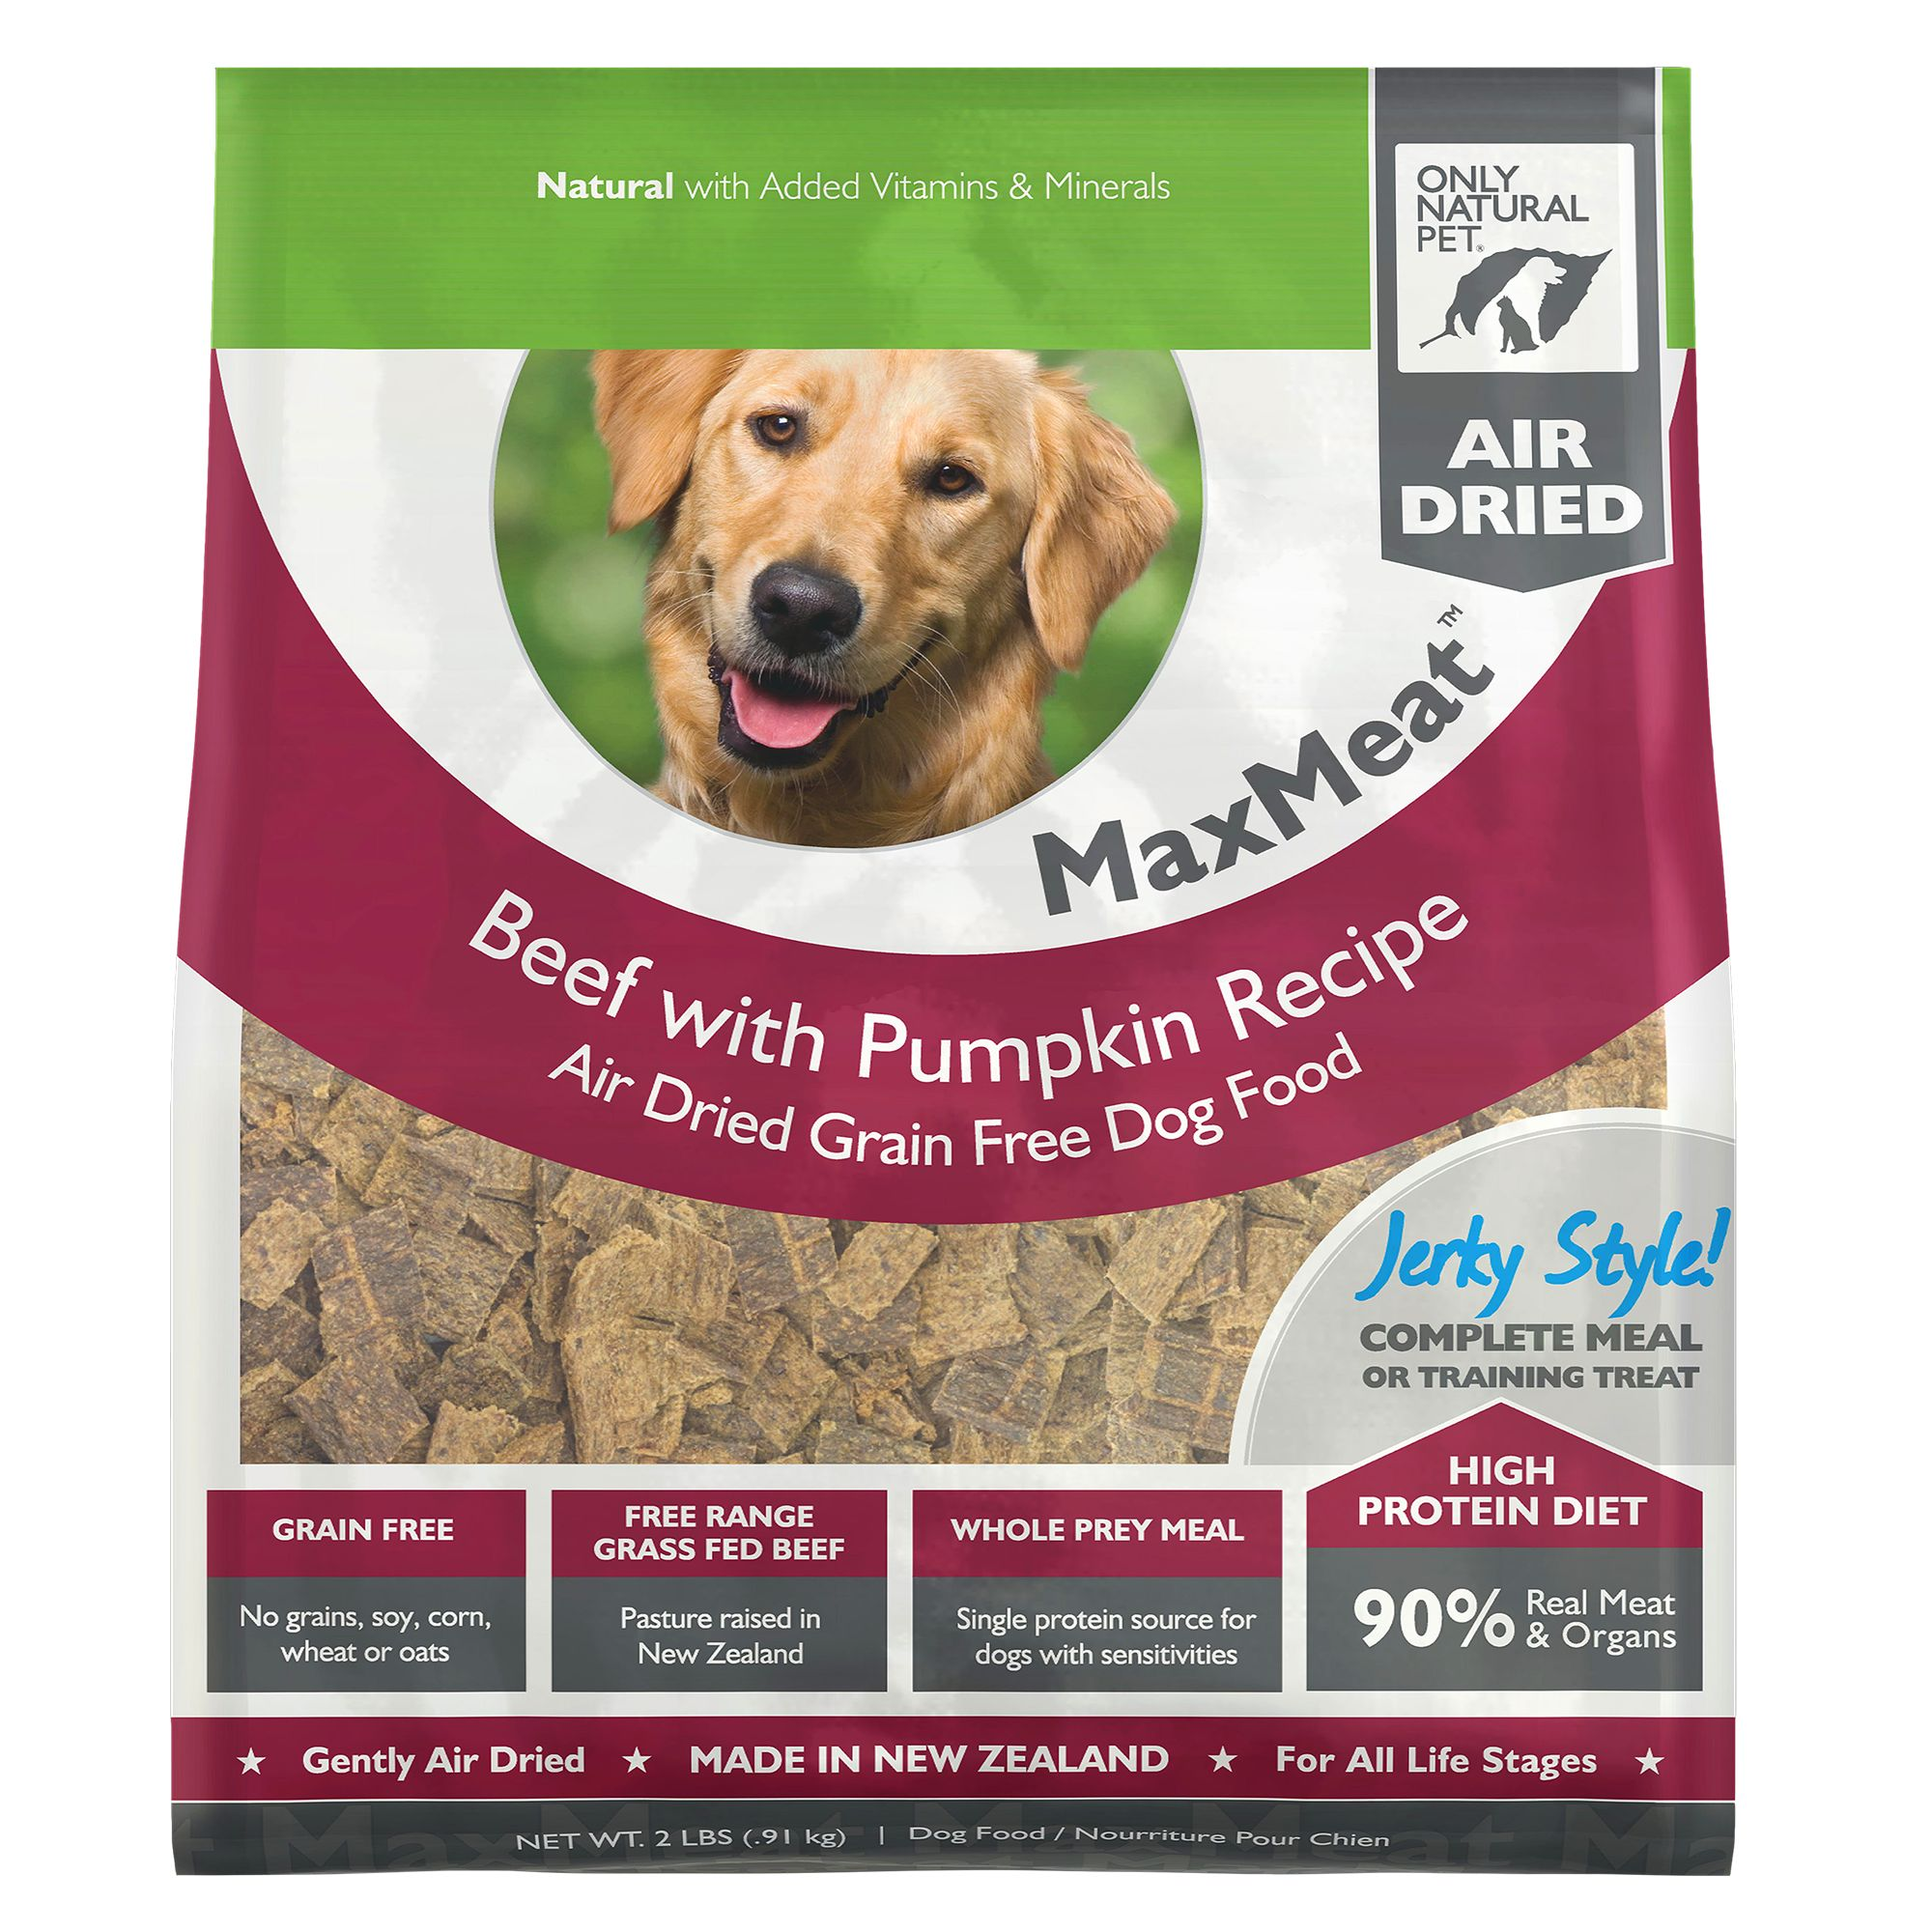 Only Customary Pet MaxMeat Dog Food - Grain Free, Air Dried, Beef size: 2 Lb, Beef with Pumpkin & Parsley, Soft Jerky-Style Chew, All Life Stages